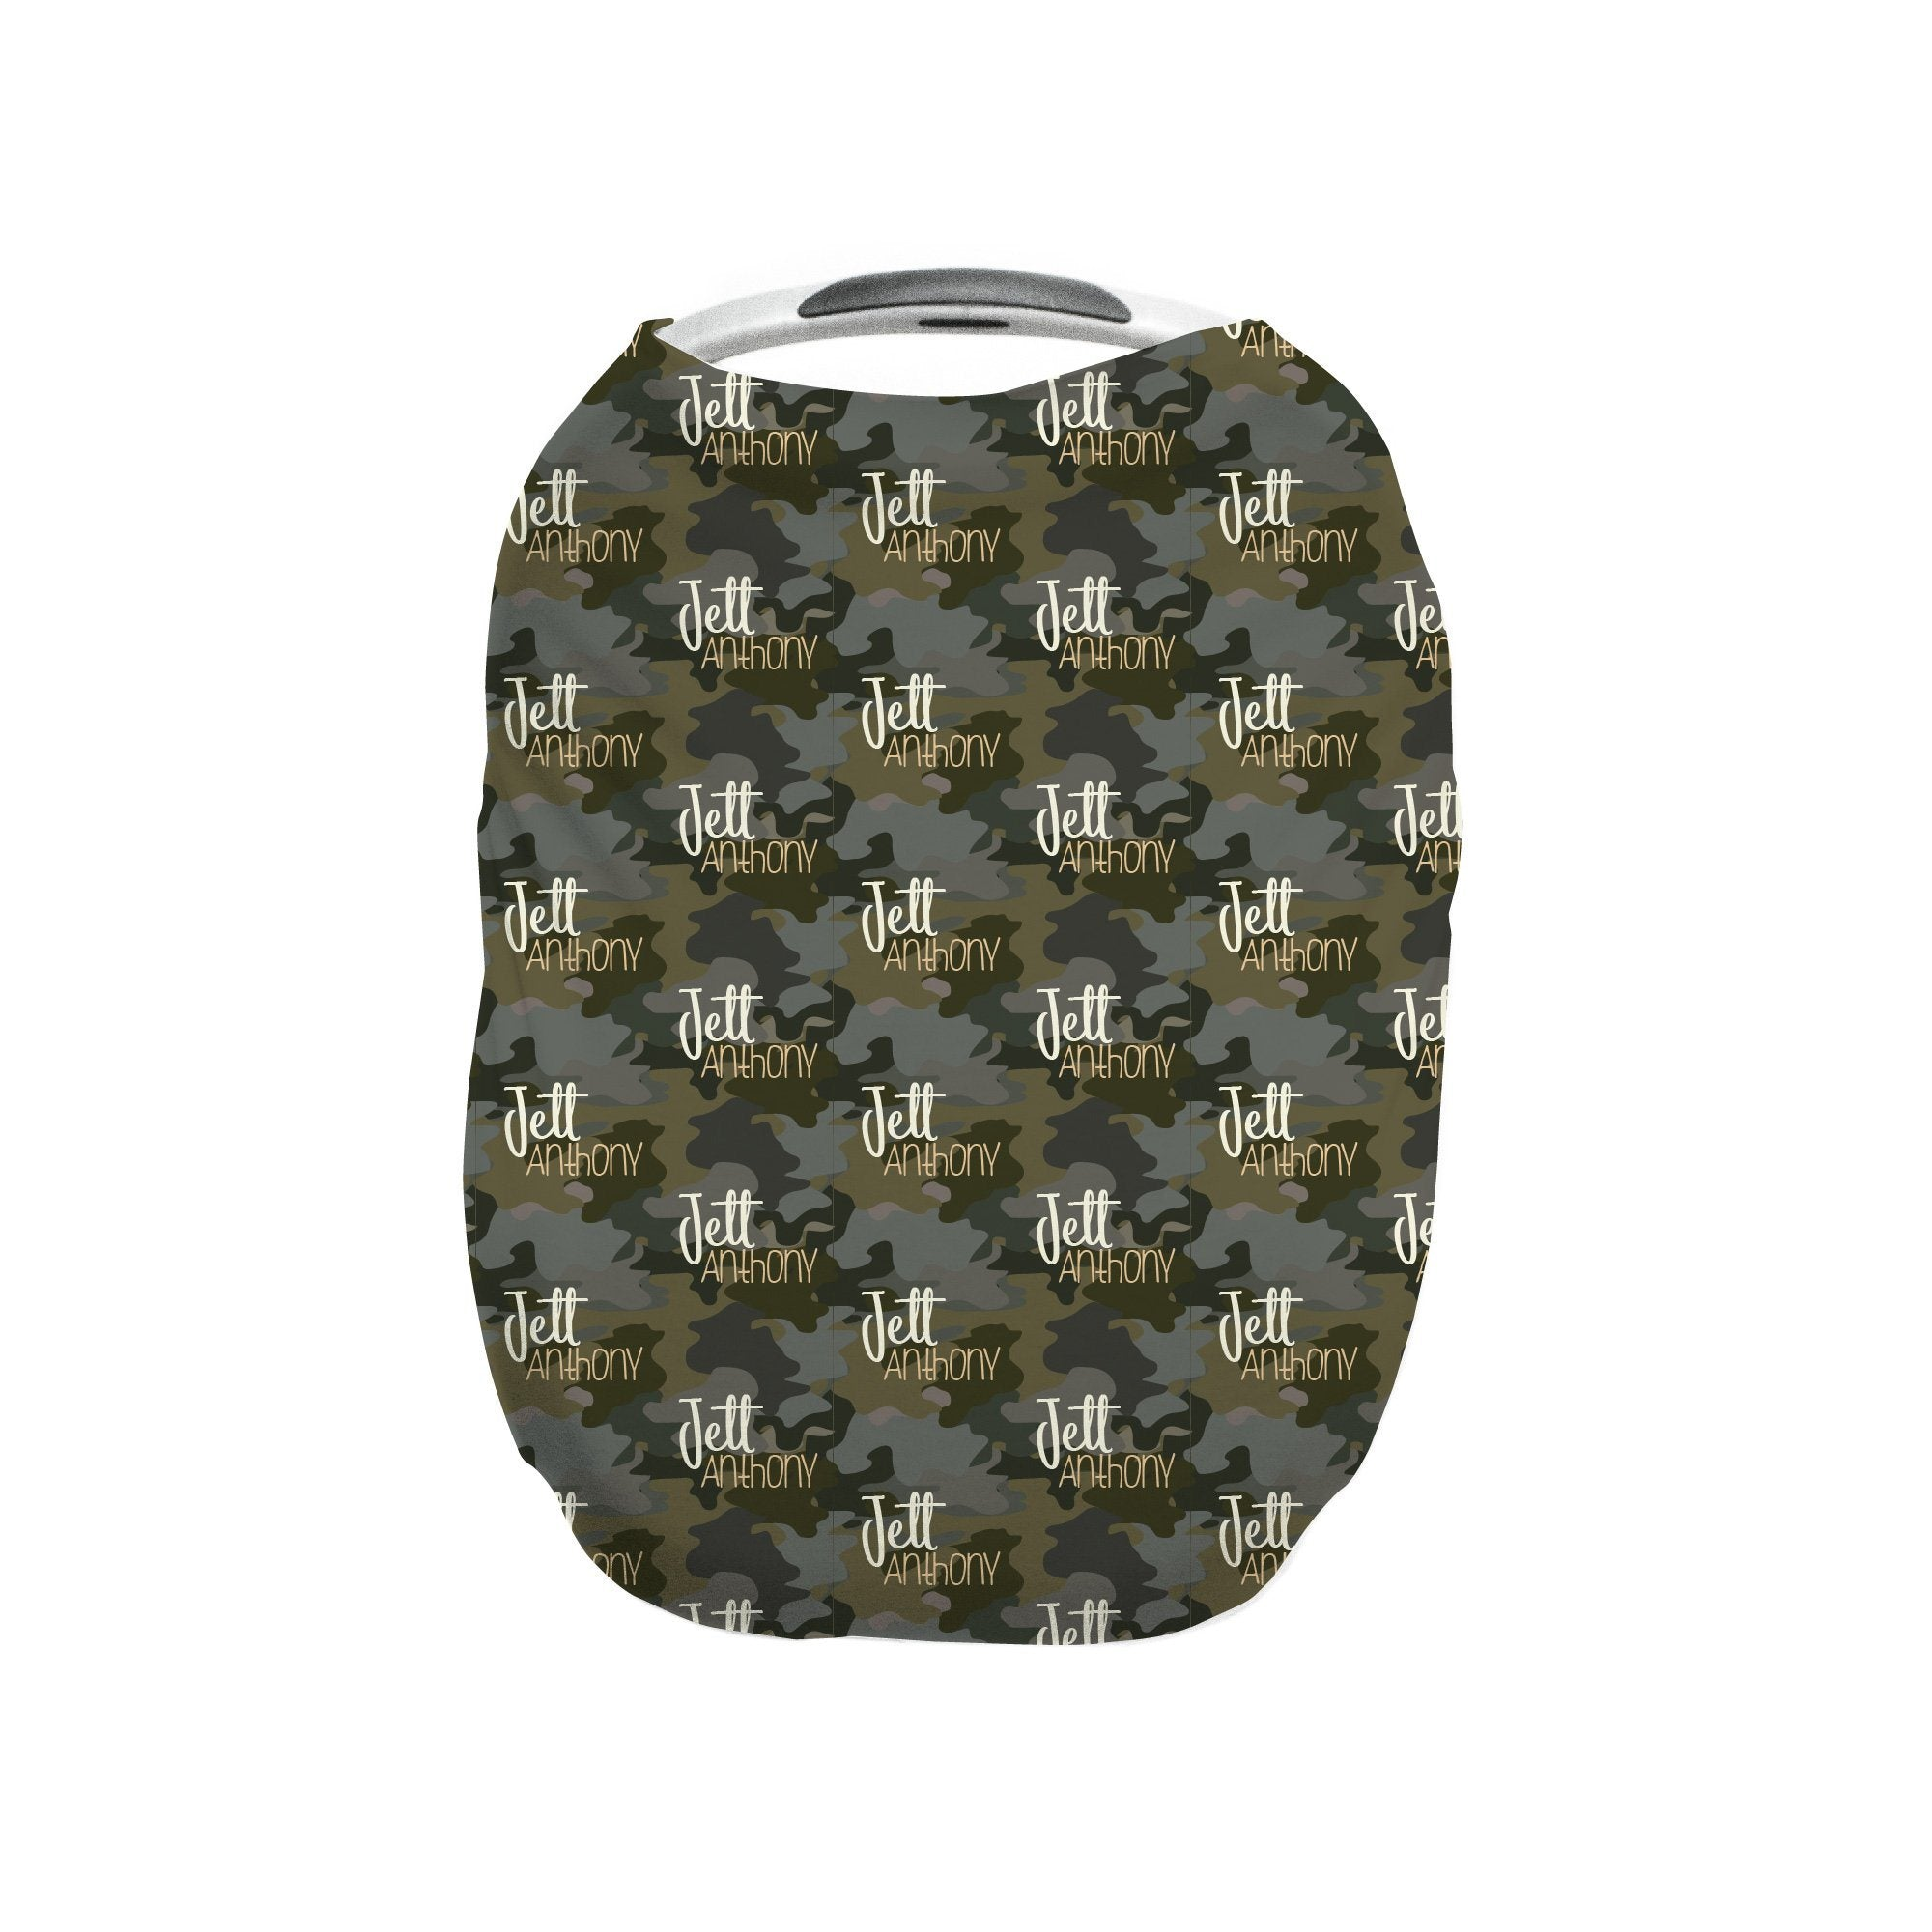 Crew's Army Camo | Car Seat Cover (Multi-Use)